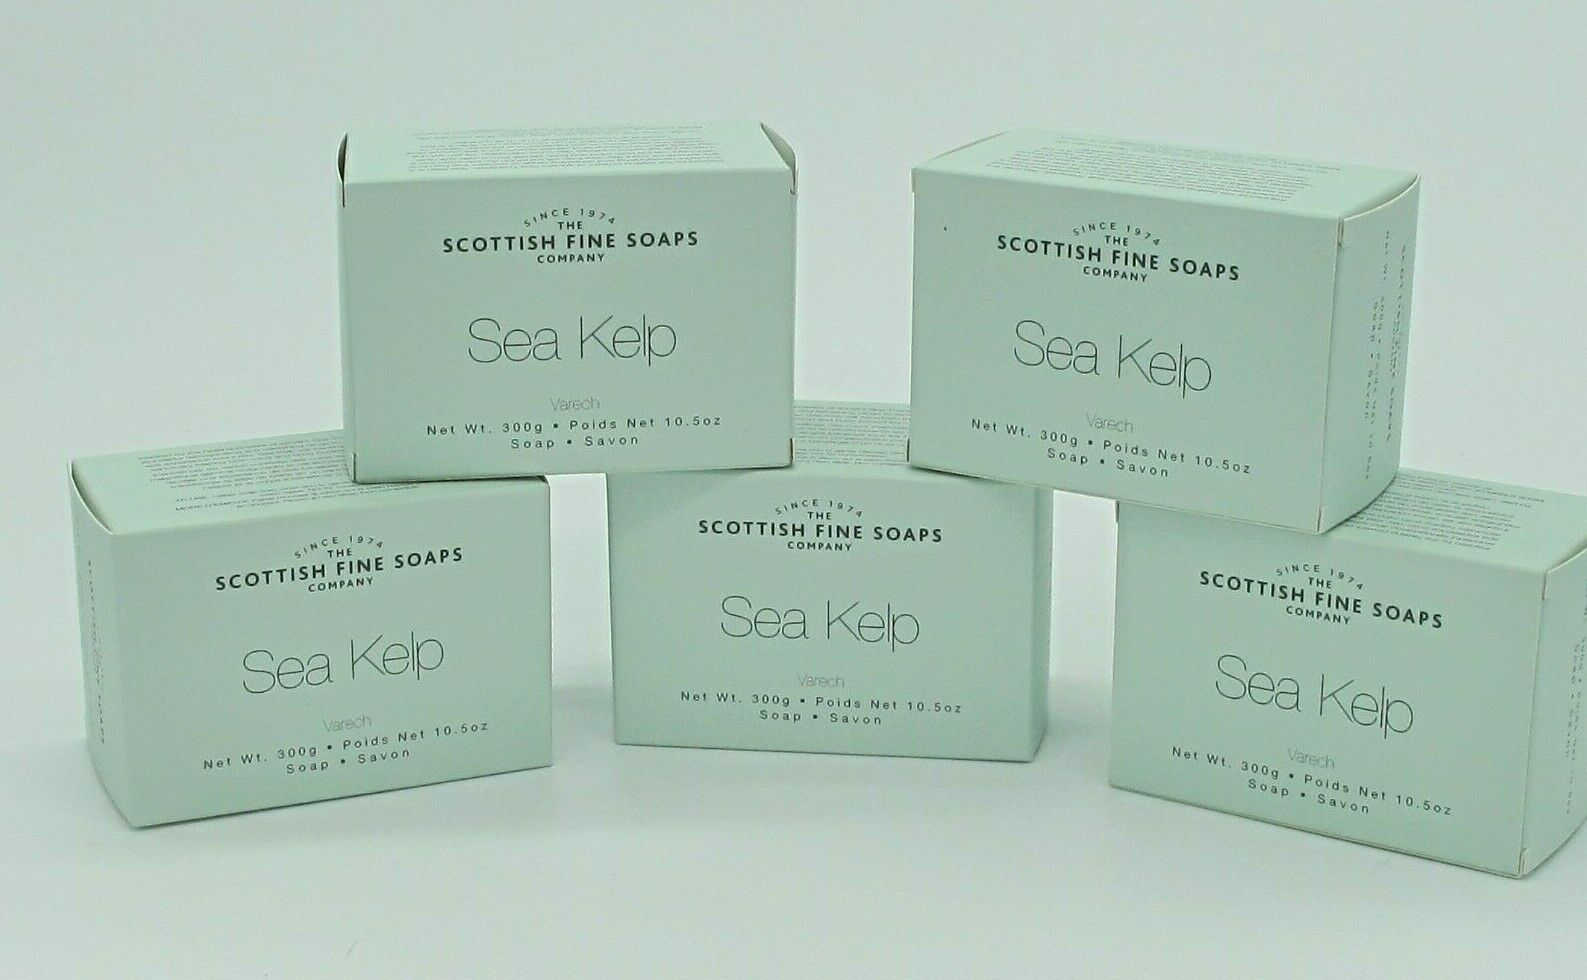 The Scottish Fine Soaps Sea Kelp Varech bar soap lot of 5 x 300g 10.5 oz